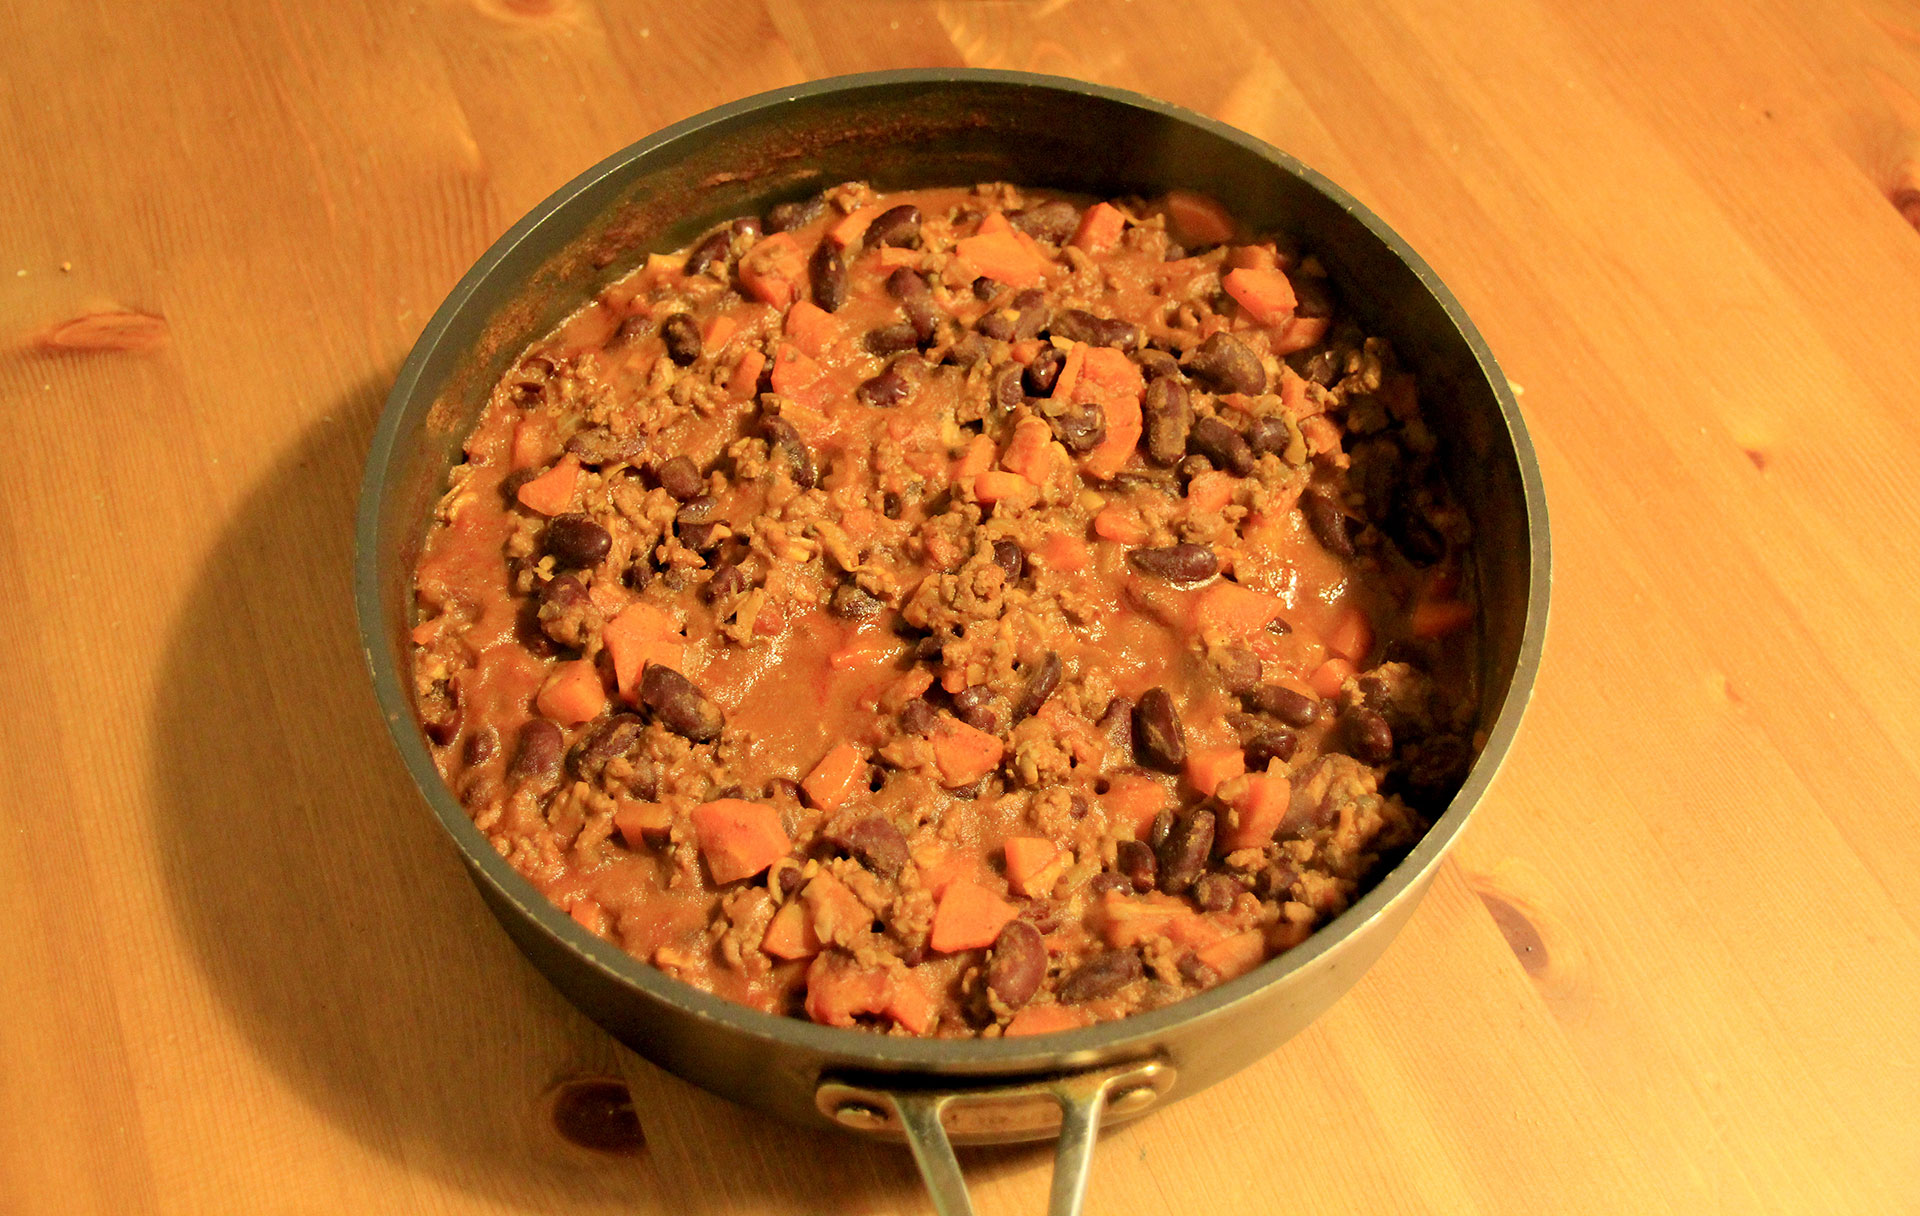 Cooked chilli